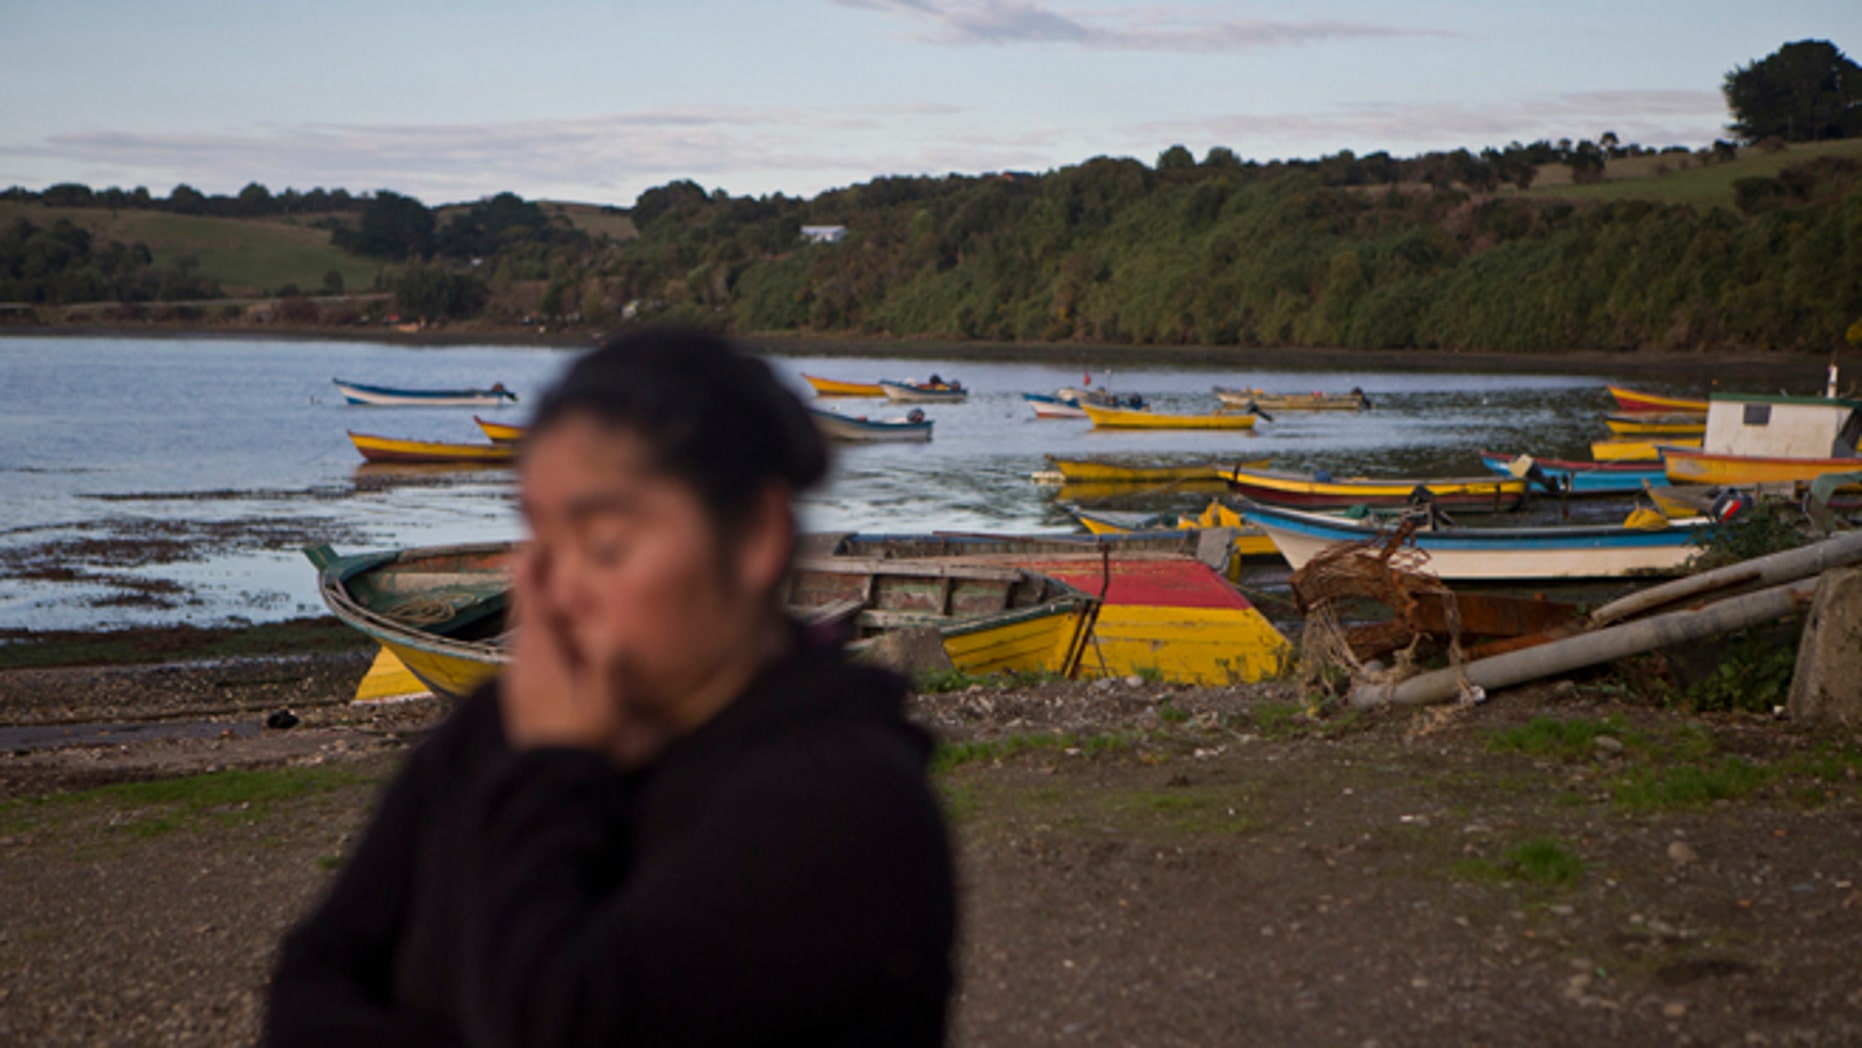 """In this May 10, 2016 photo, small scale fisherwoman Marisol Millaquien stands on the shore backdropped by idle boats in the fishing village Quetalmahue, on Chile's Chiloe Island, during the country's worst ever """"red tide"""" environmental disaster. """"They killed our ocean,"""" said Millaquien, who has been out of work for three weeks due to a toxic algal bloom that is threatening the livelihood of many in this archipelago located in the Pacific Ocean. (AP Photo/Esteban Felix)"""